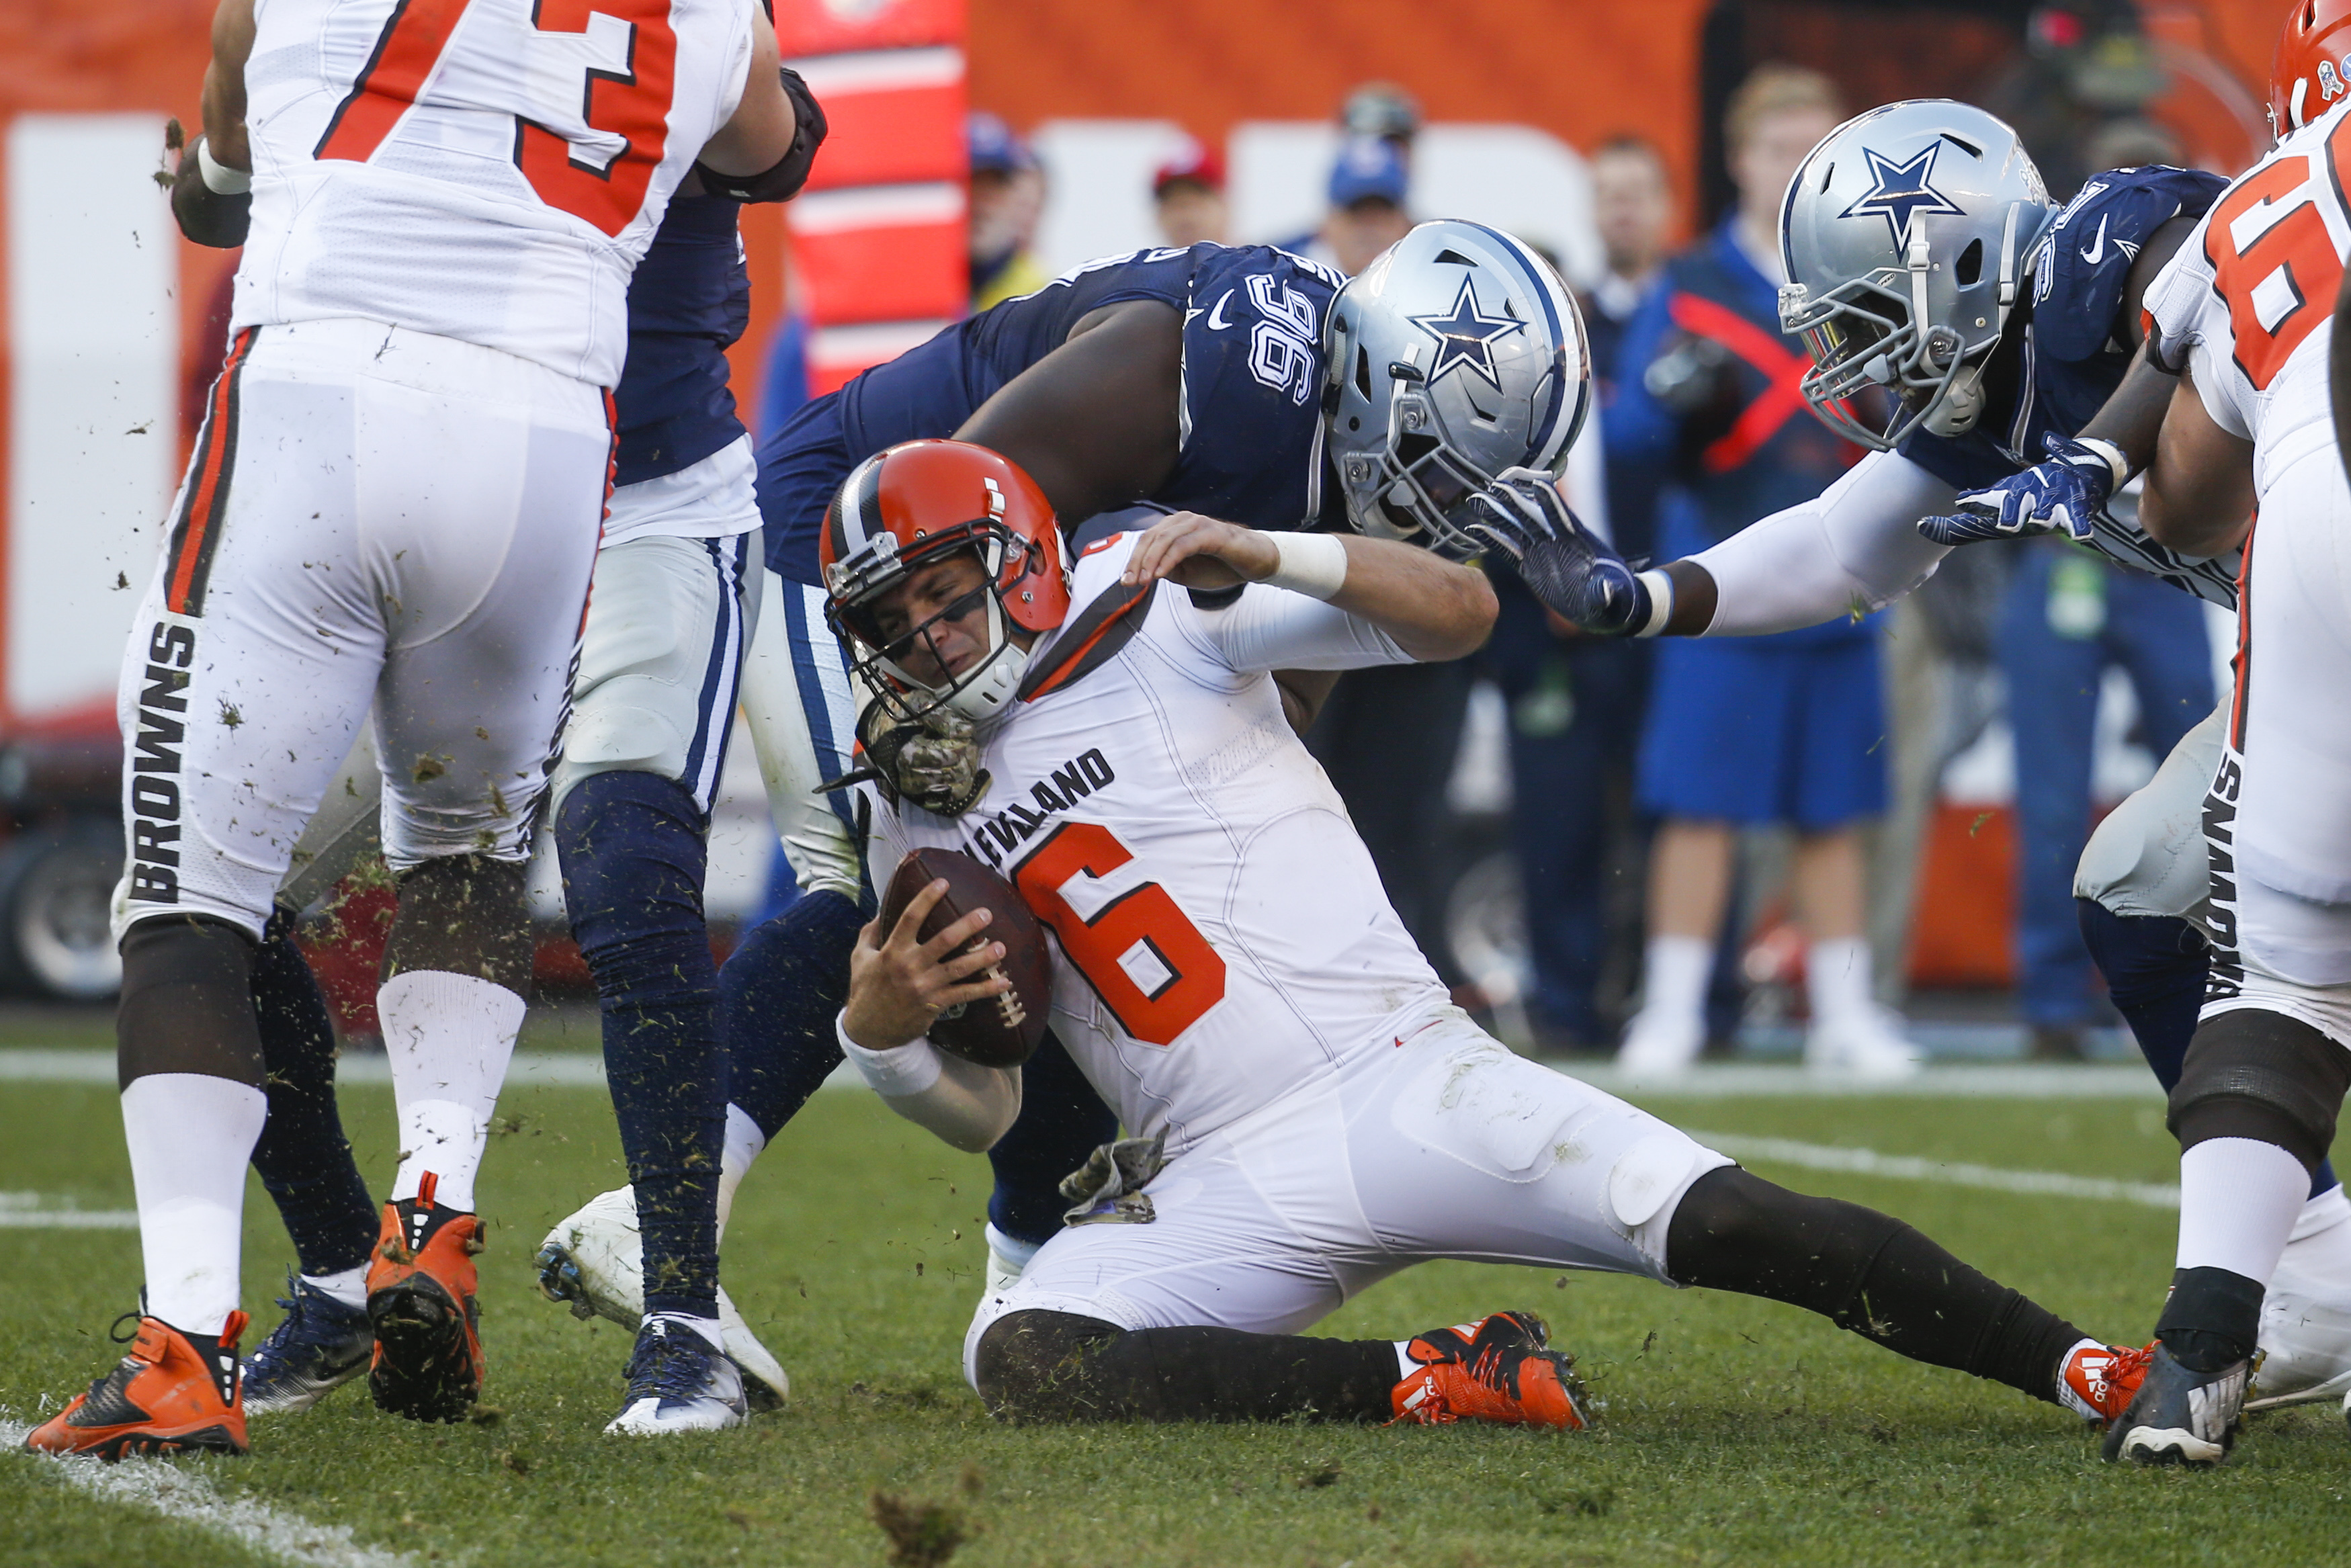 Cleveland Browns quarterback Cody Kessler (6) is sacked by Dallas Cowboys defensive tackle Maliek Collins (96) in the second half of an NFL football game, Sunday, Nov. 6, 2016, in Cleveland. (AP Photo/Ron Schwane)